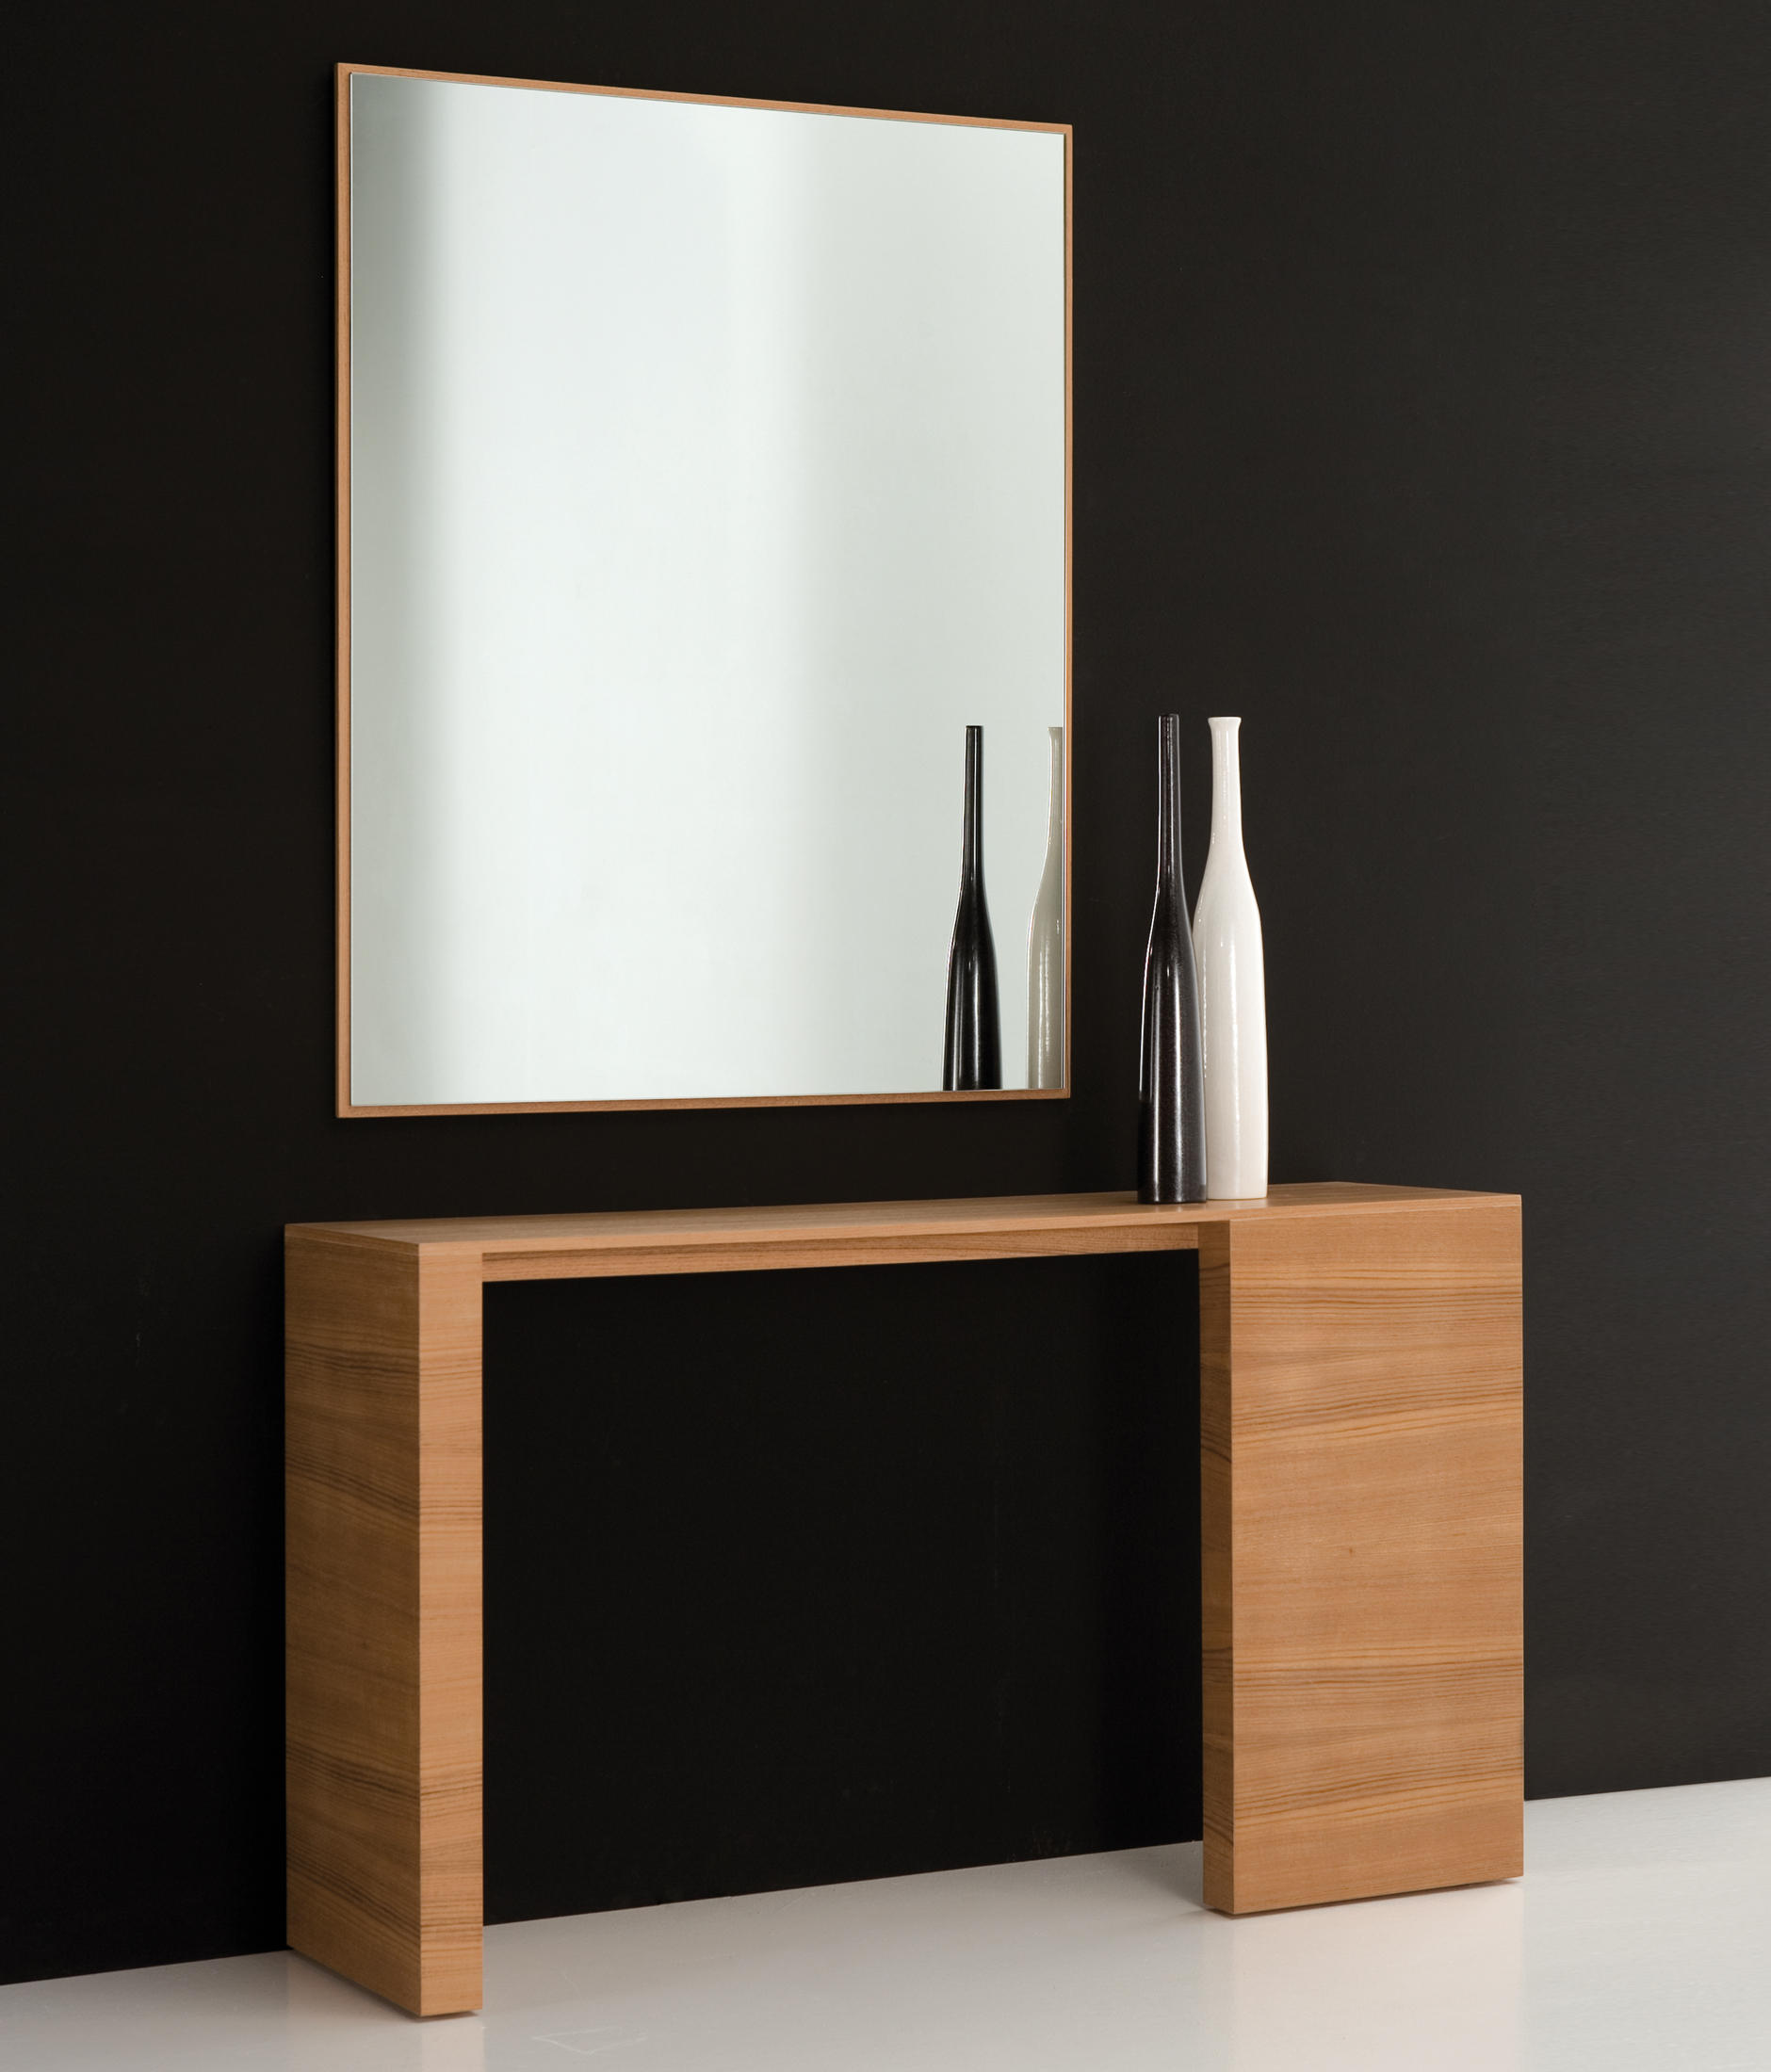 Orot console wall shelves from kendo mobiliario architonic for By h mobiliario